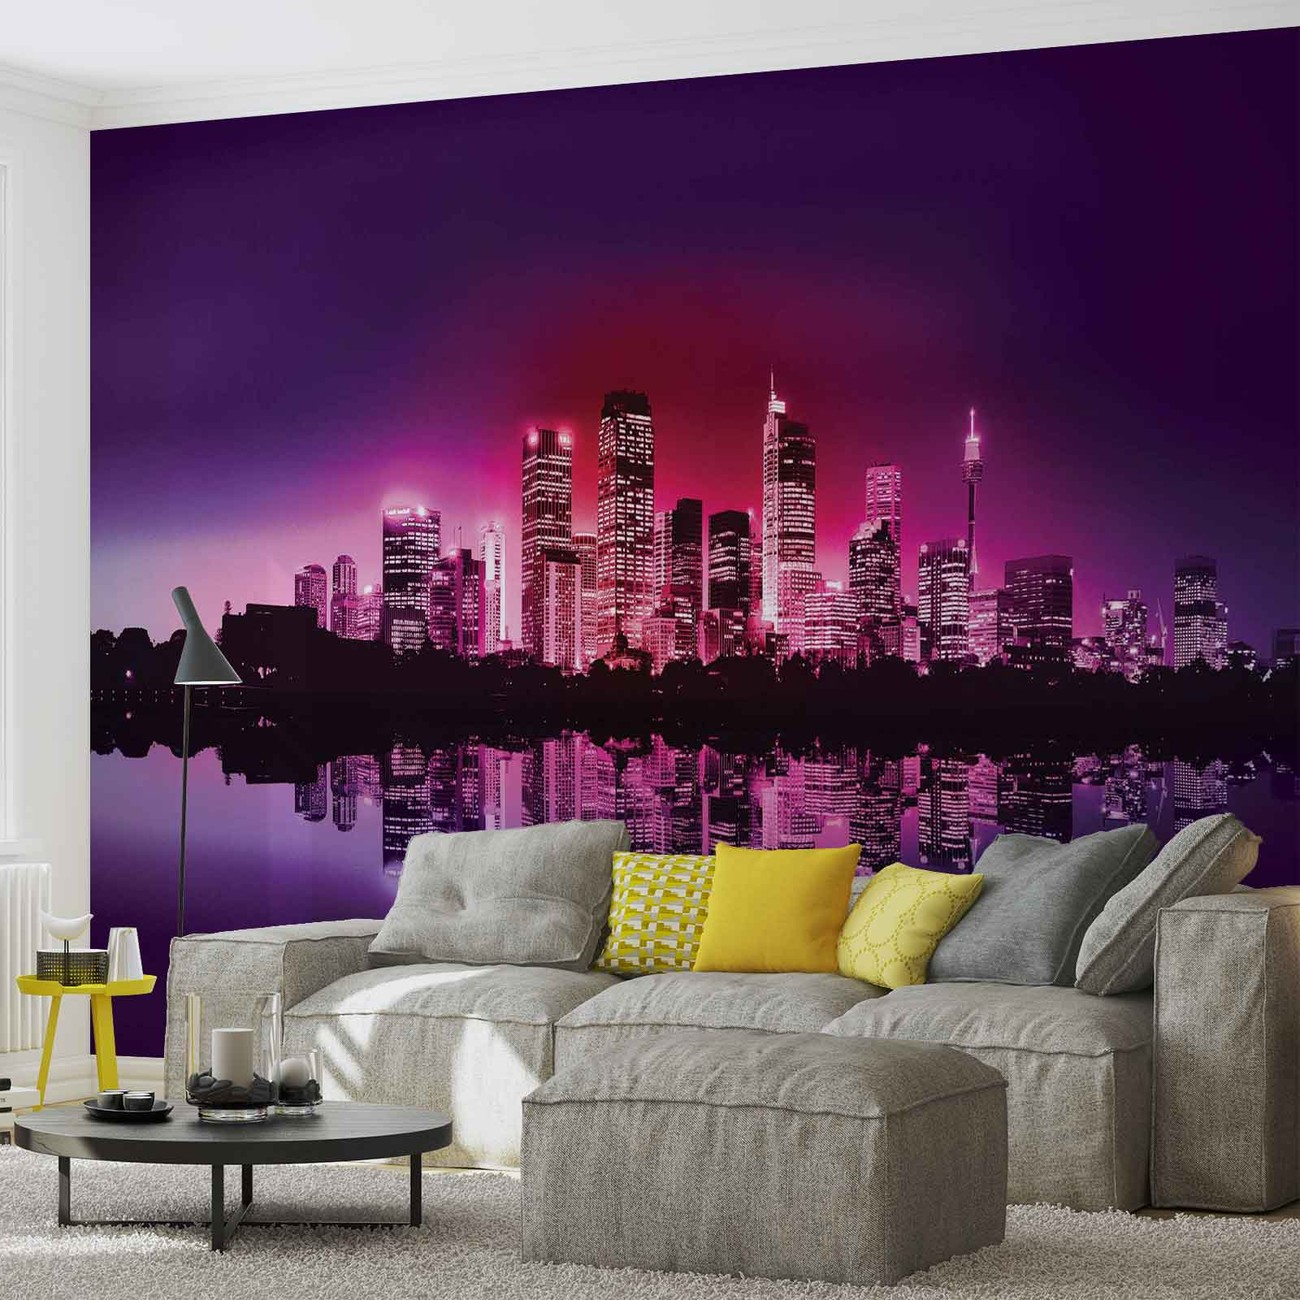 City new york skyline wall paper mural buy at europosters for Buy mural wallpaper